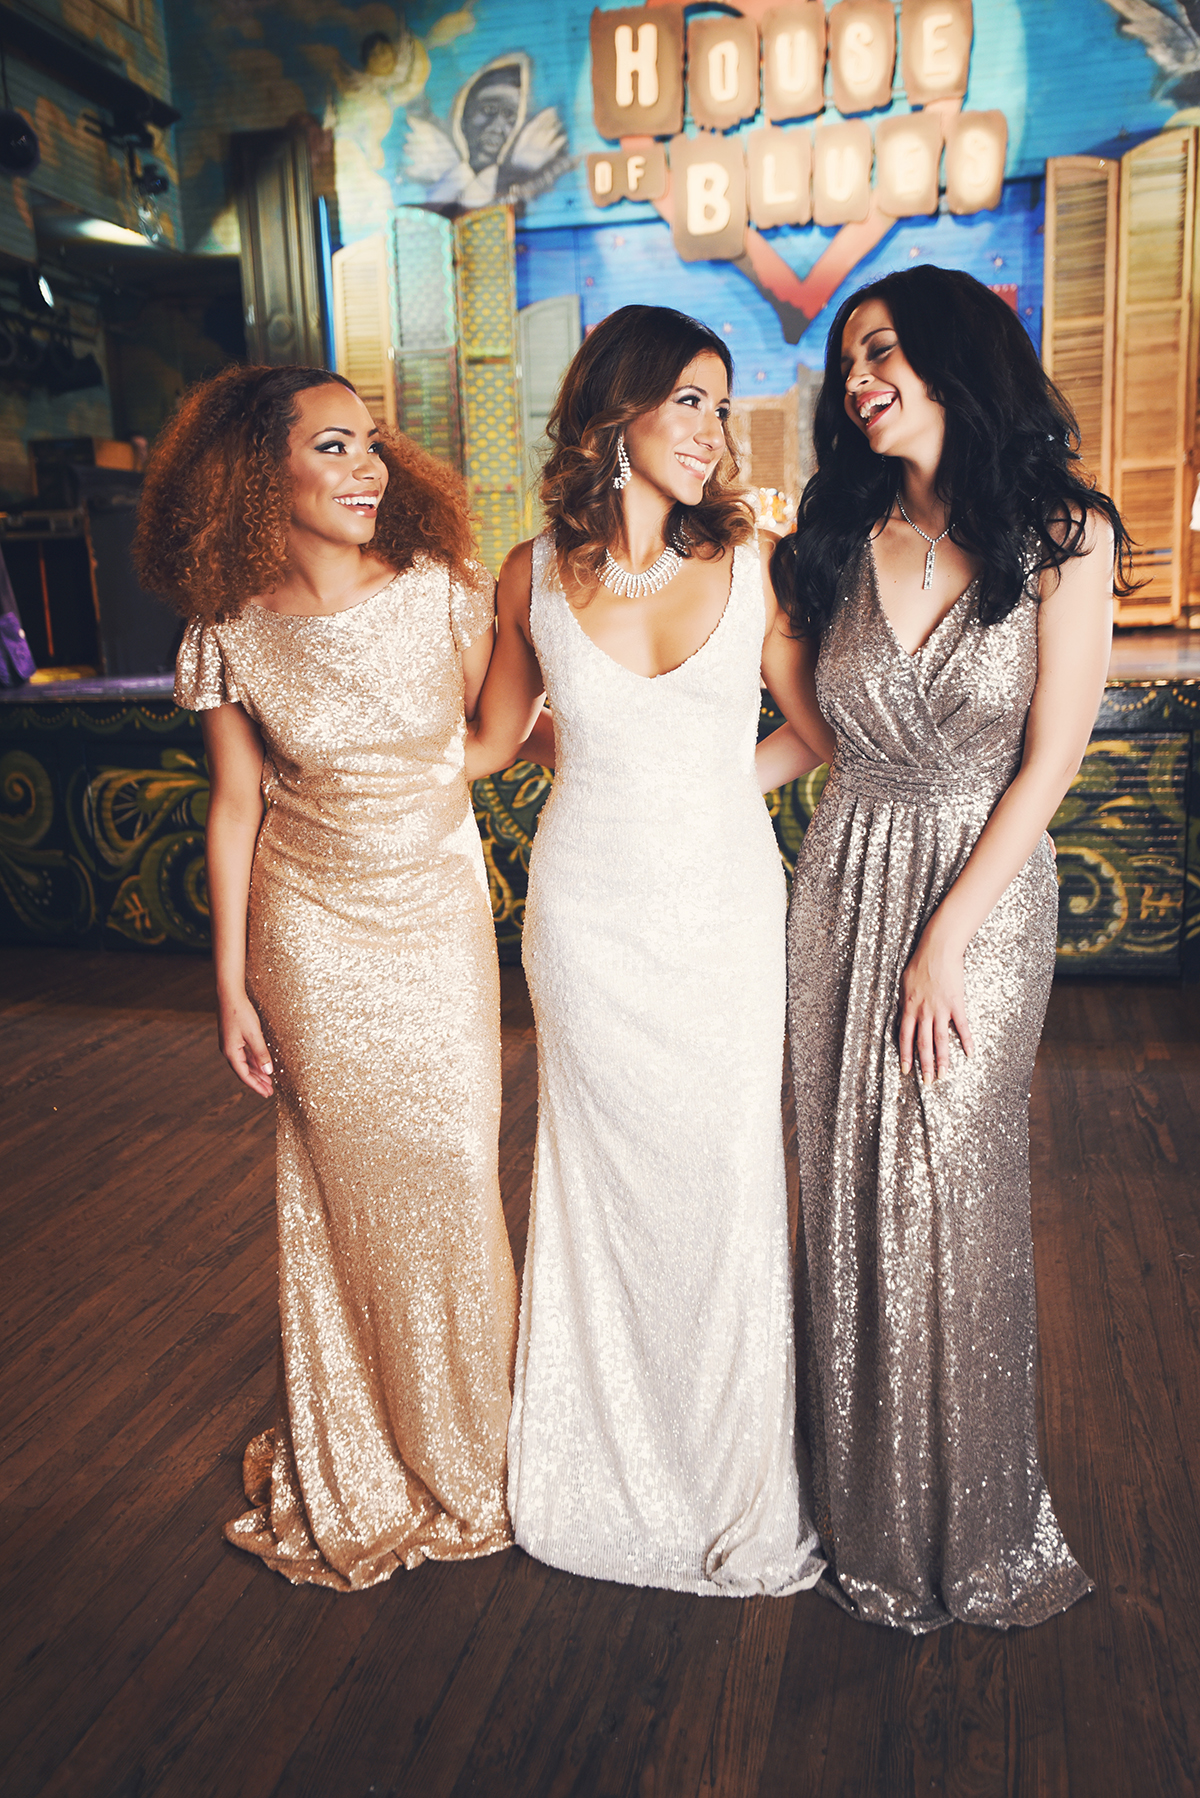 Sparkle is essential on the dance floor. For these party looks, all three ladies wear all-over sequin gowns.